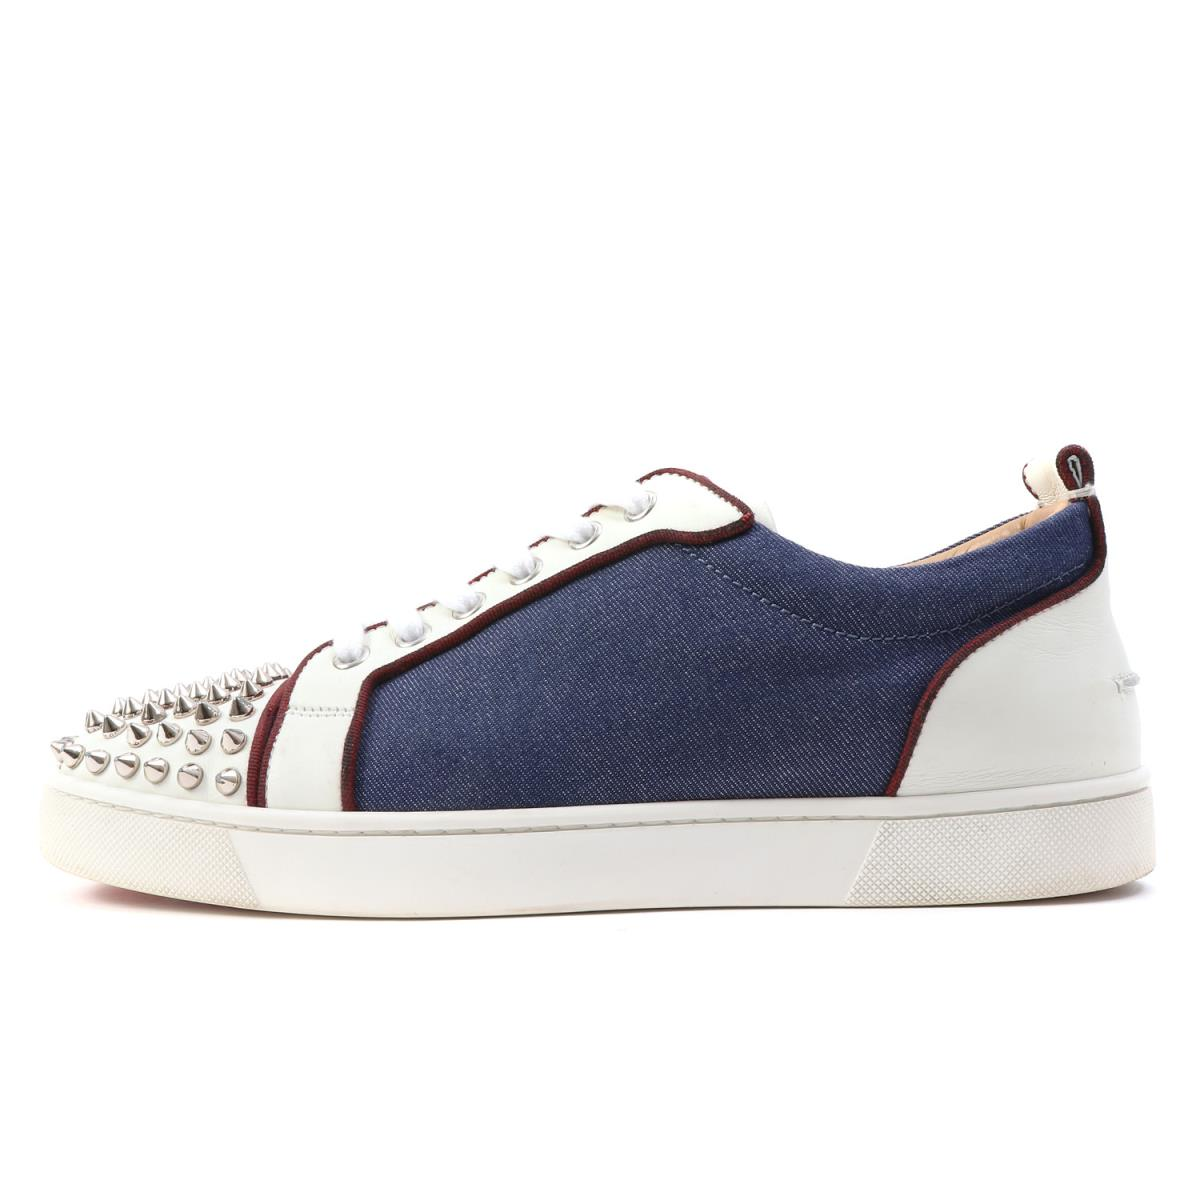 sports shoes 2d4bf 071f9 Denim reshuffling low-frequency cut sneakers (LOUIS JUNIOR SPIKES ORLATO)  white X indigo 40 1/2 with Christian Louboutin (クリスチャンルブタン) 17S/S spikes ...